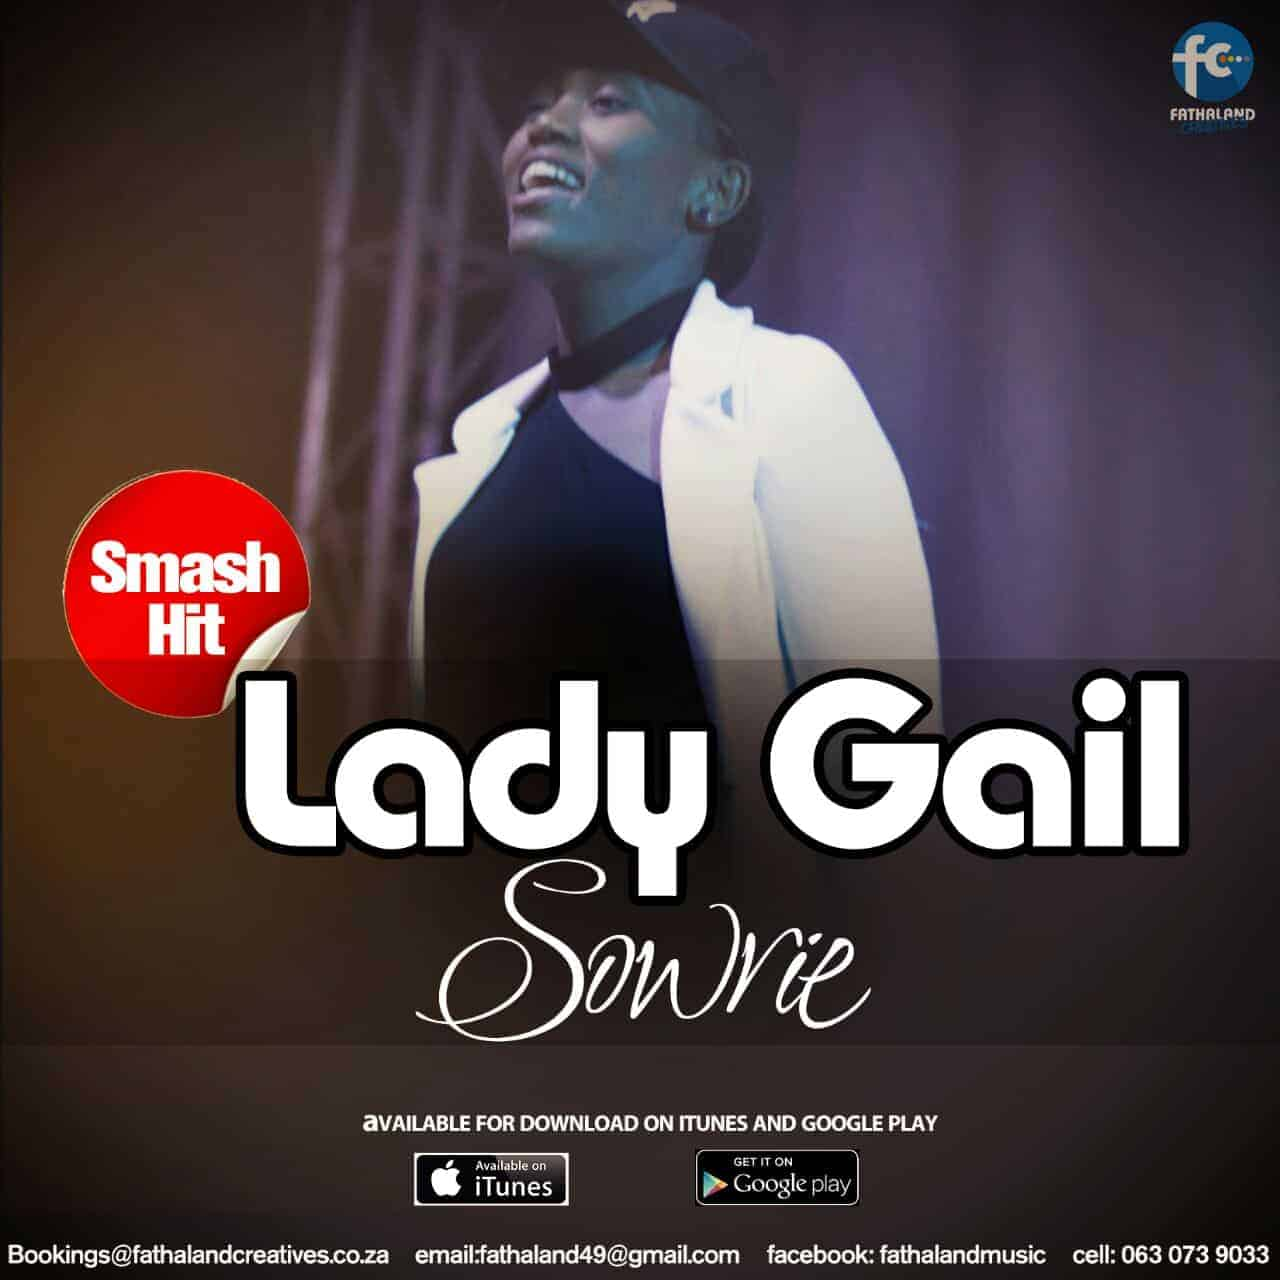 Lady Gail - Sowrie